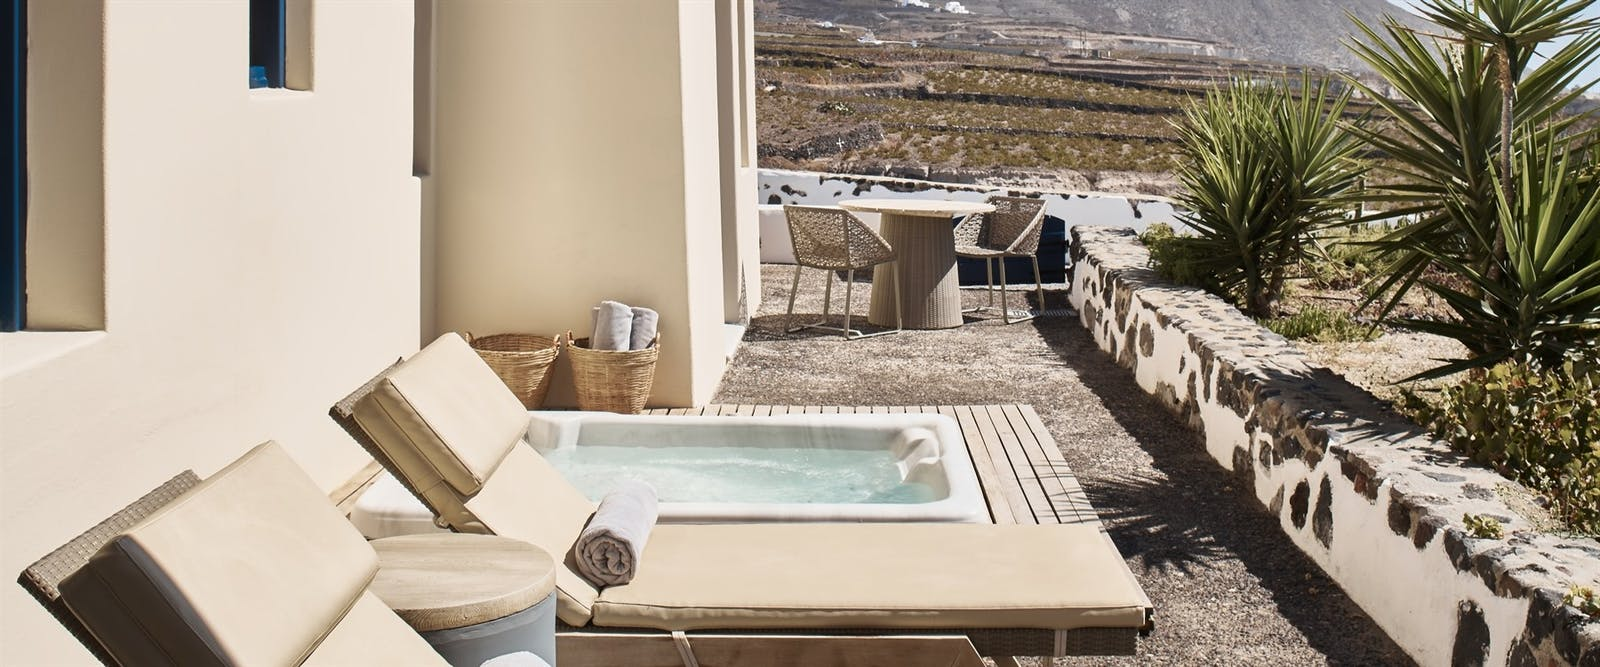 Aegean Suite Terrace at Vedema, a Luxury Collection Resort, Santorini, Greece